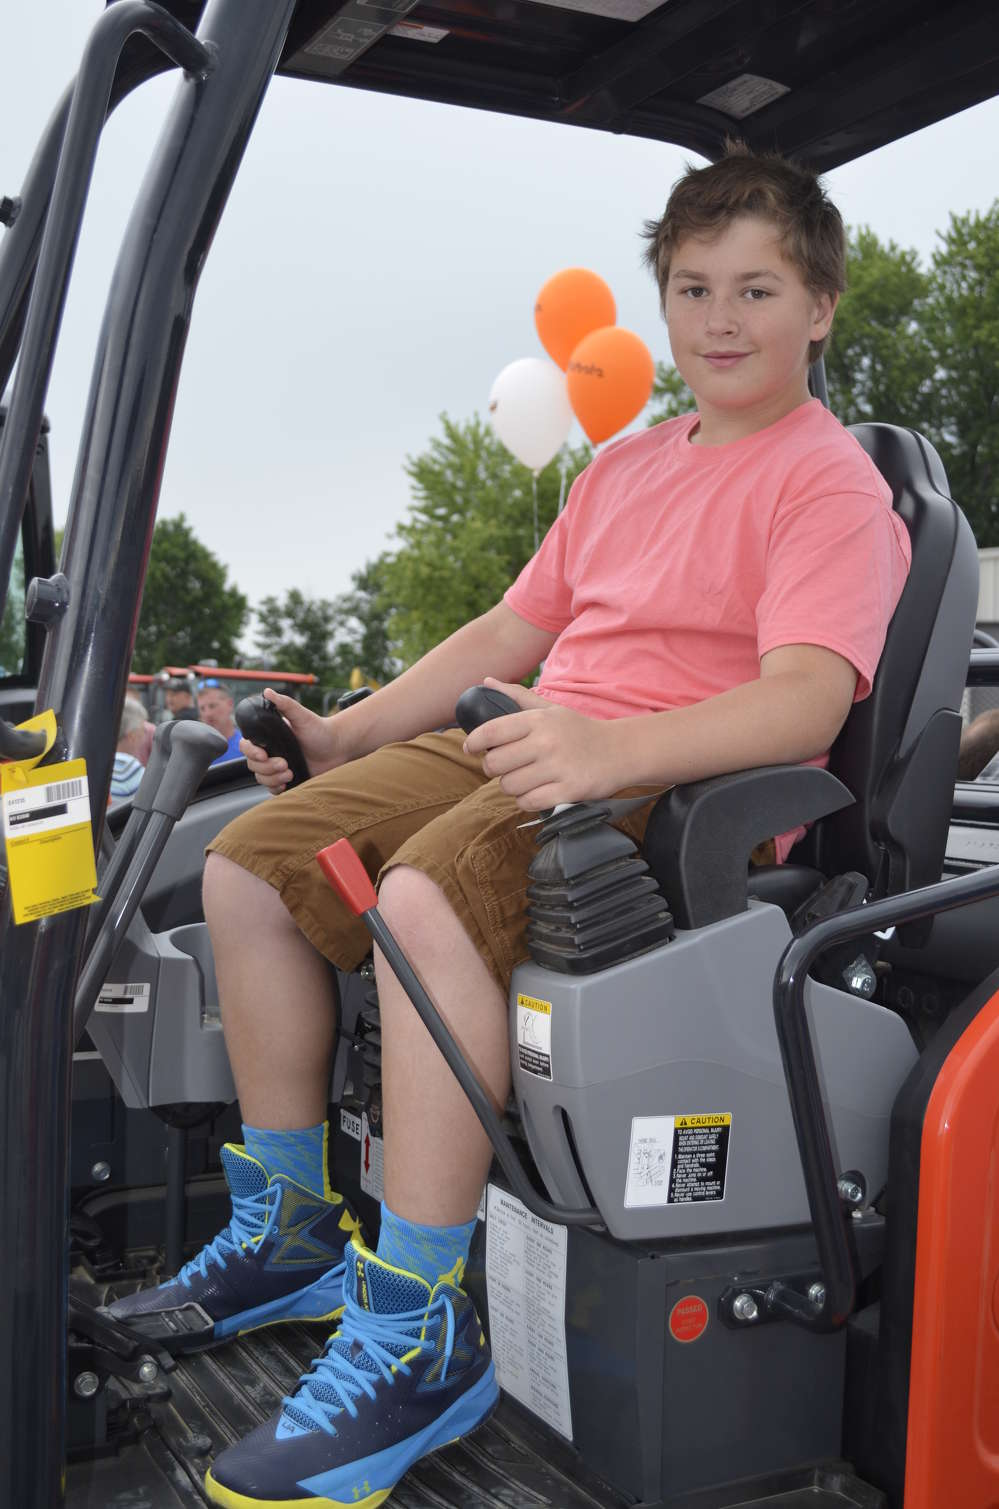 It may be a few years before he takes over as president of Levea Hogeboom Contracting in Mohawk, N.Y., but Raiden Levea has determined that the seat of this Kubota excavator fits him just fine.